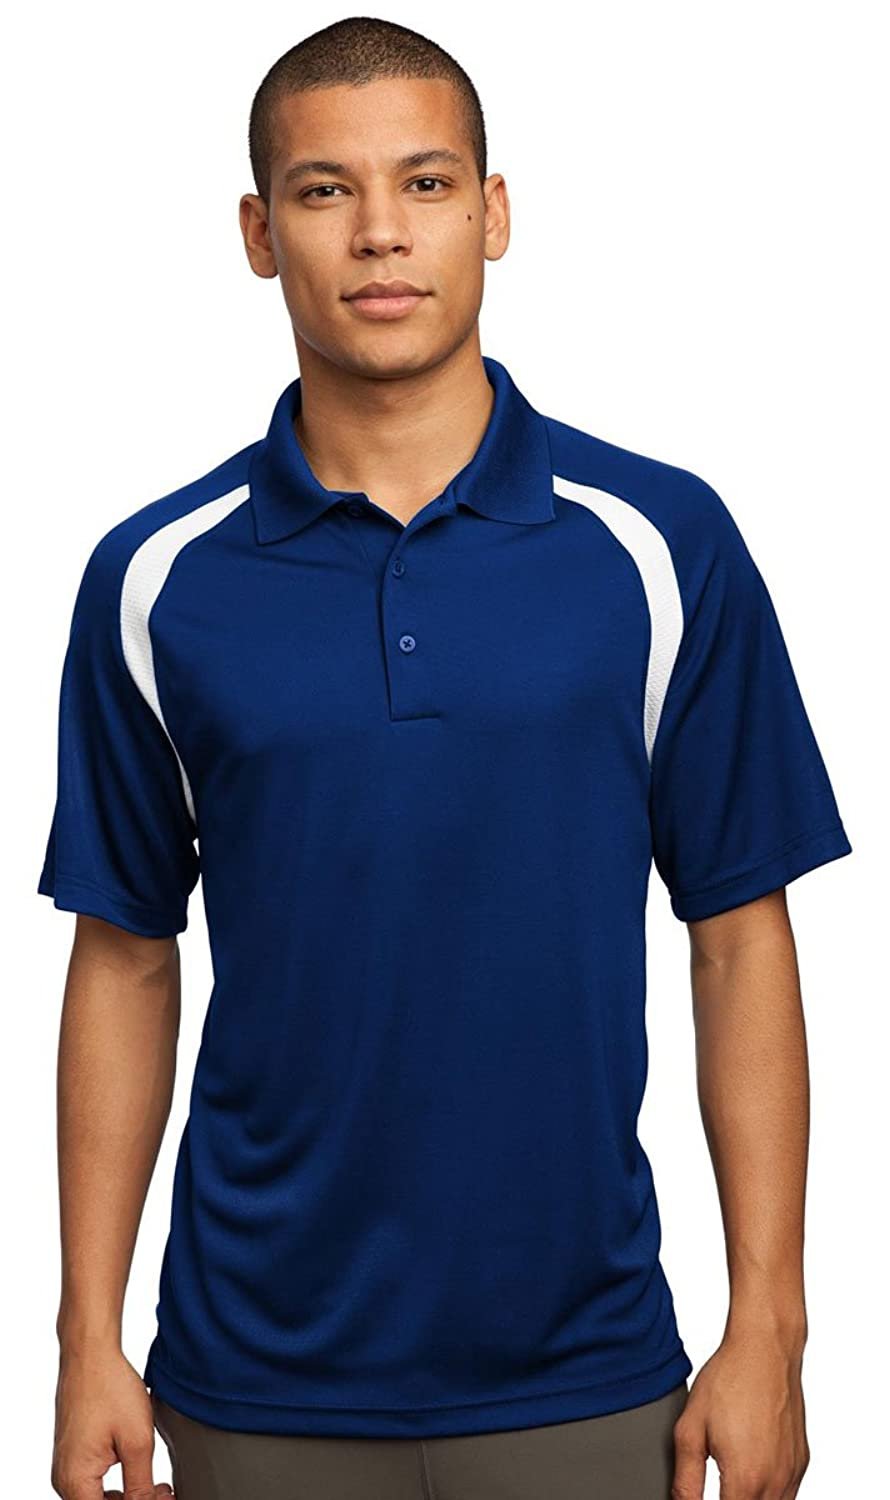 Sport-Tek Men's Performance Colorblock Polo Shirt_True Royal/White_L